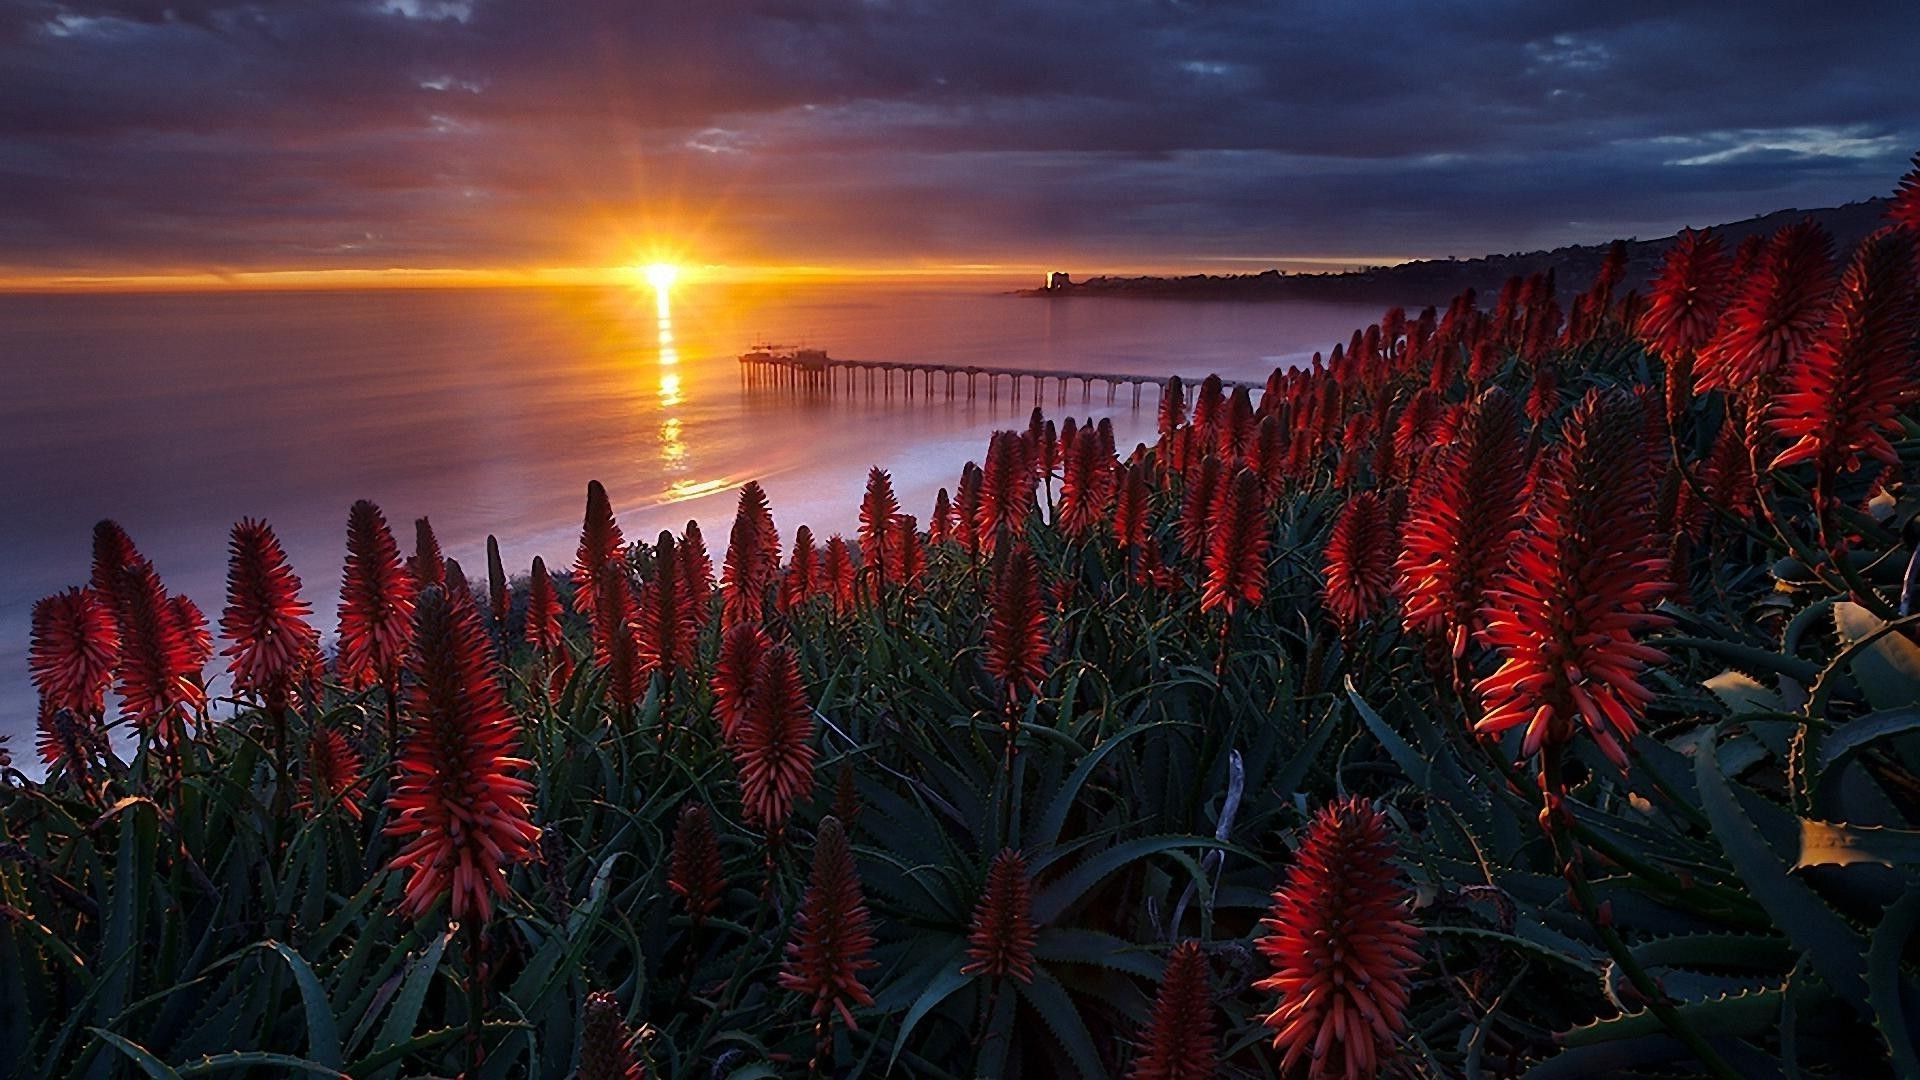 the sunset and sunrise sunset nature color flower landscape sun beach tree dawn sky outdoors flora travel